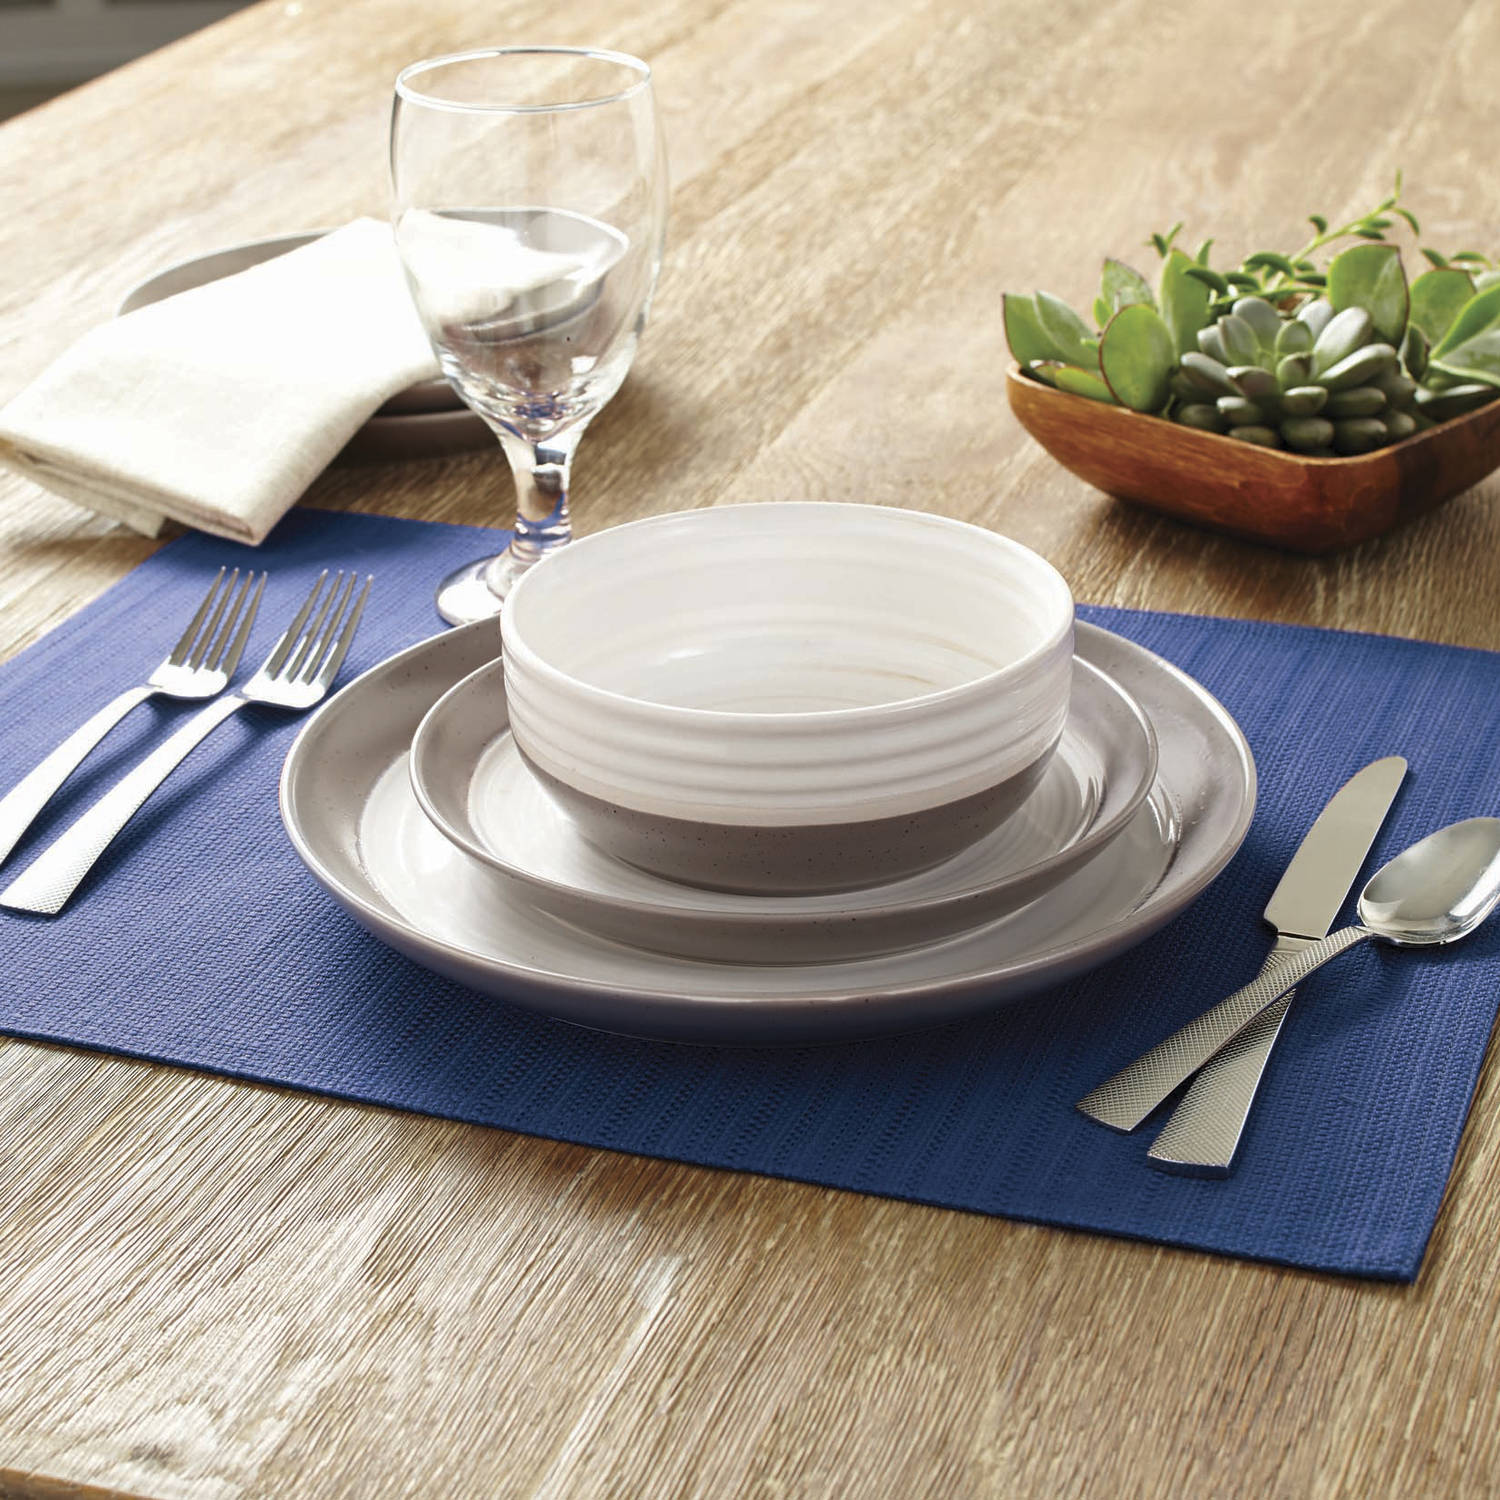 Better Homes And Garden Ashmoor 12-Piece Dinnerware Set & Better Homes And Garden Ashmoor 12-Piece Dinnerware Set - Walmart.com